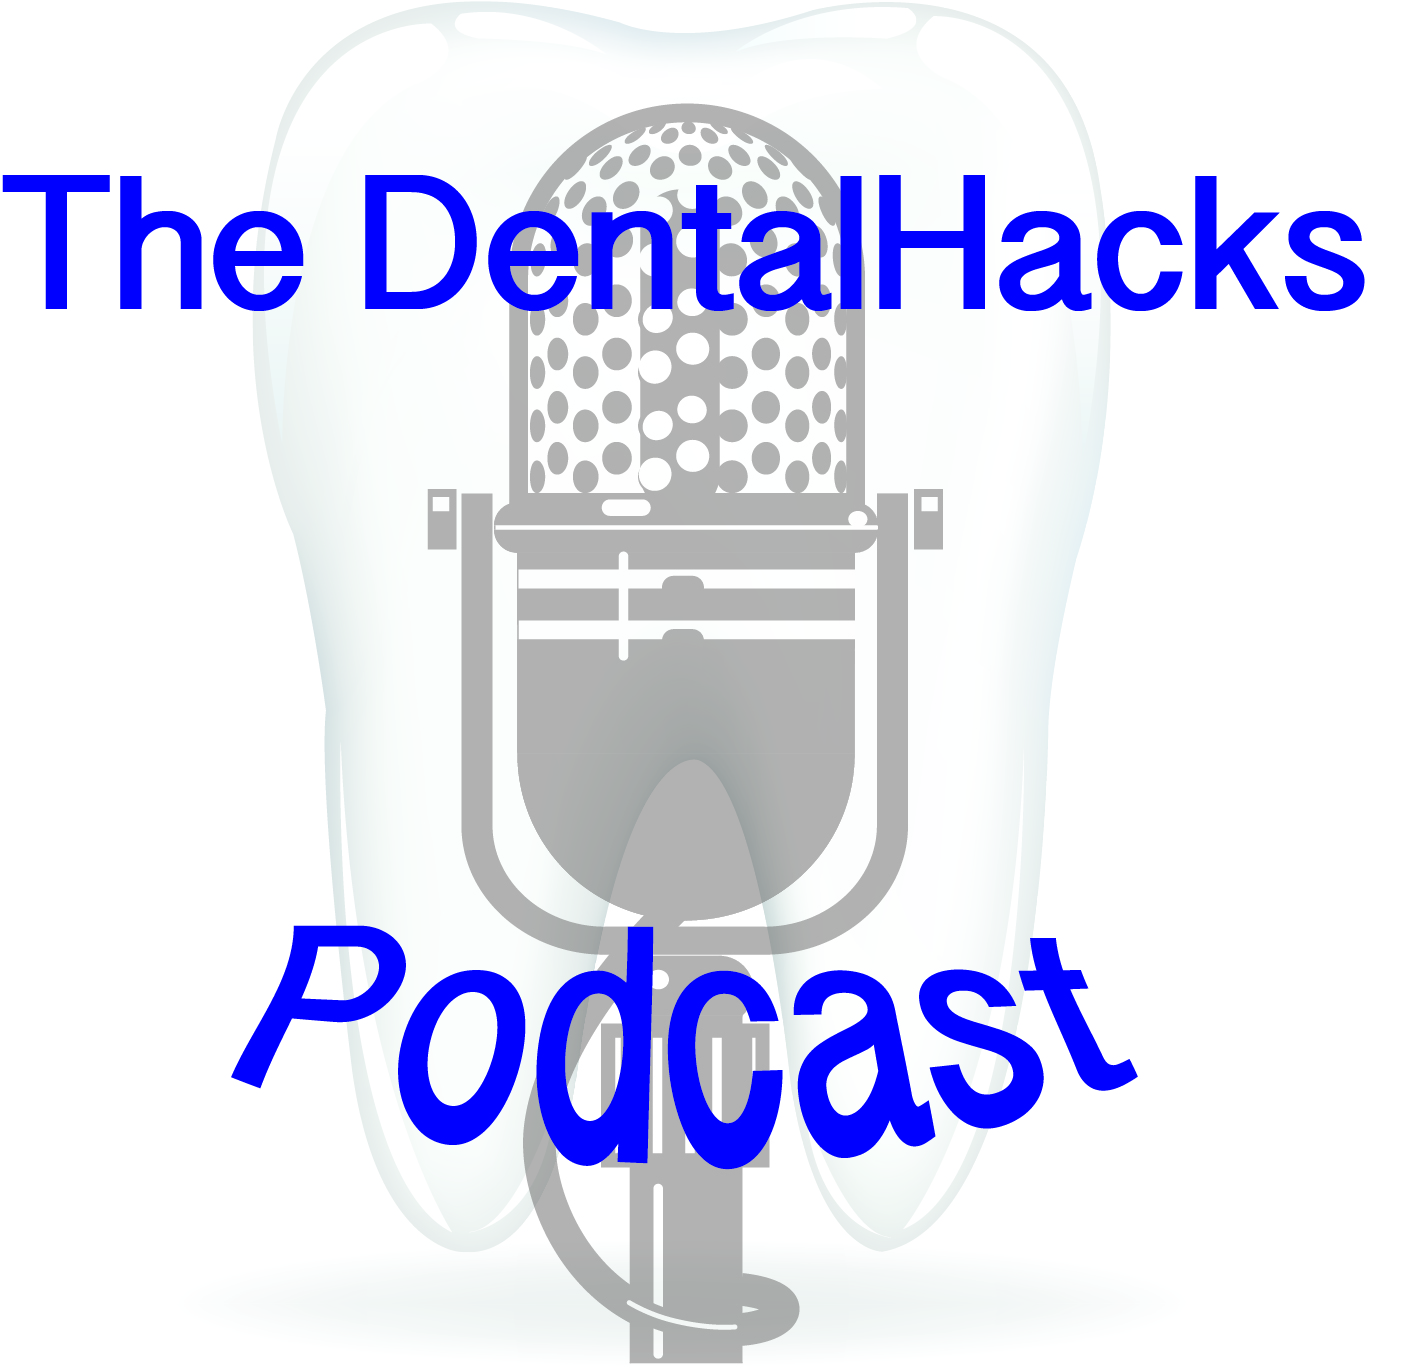 The DentalHacks Podcast episode 05: Mark Jackson sees the future in 3D